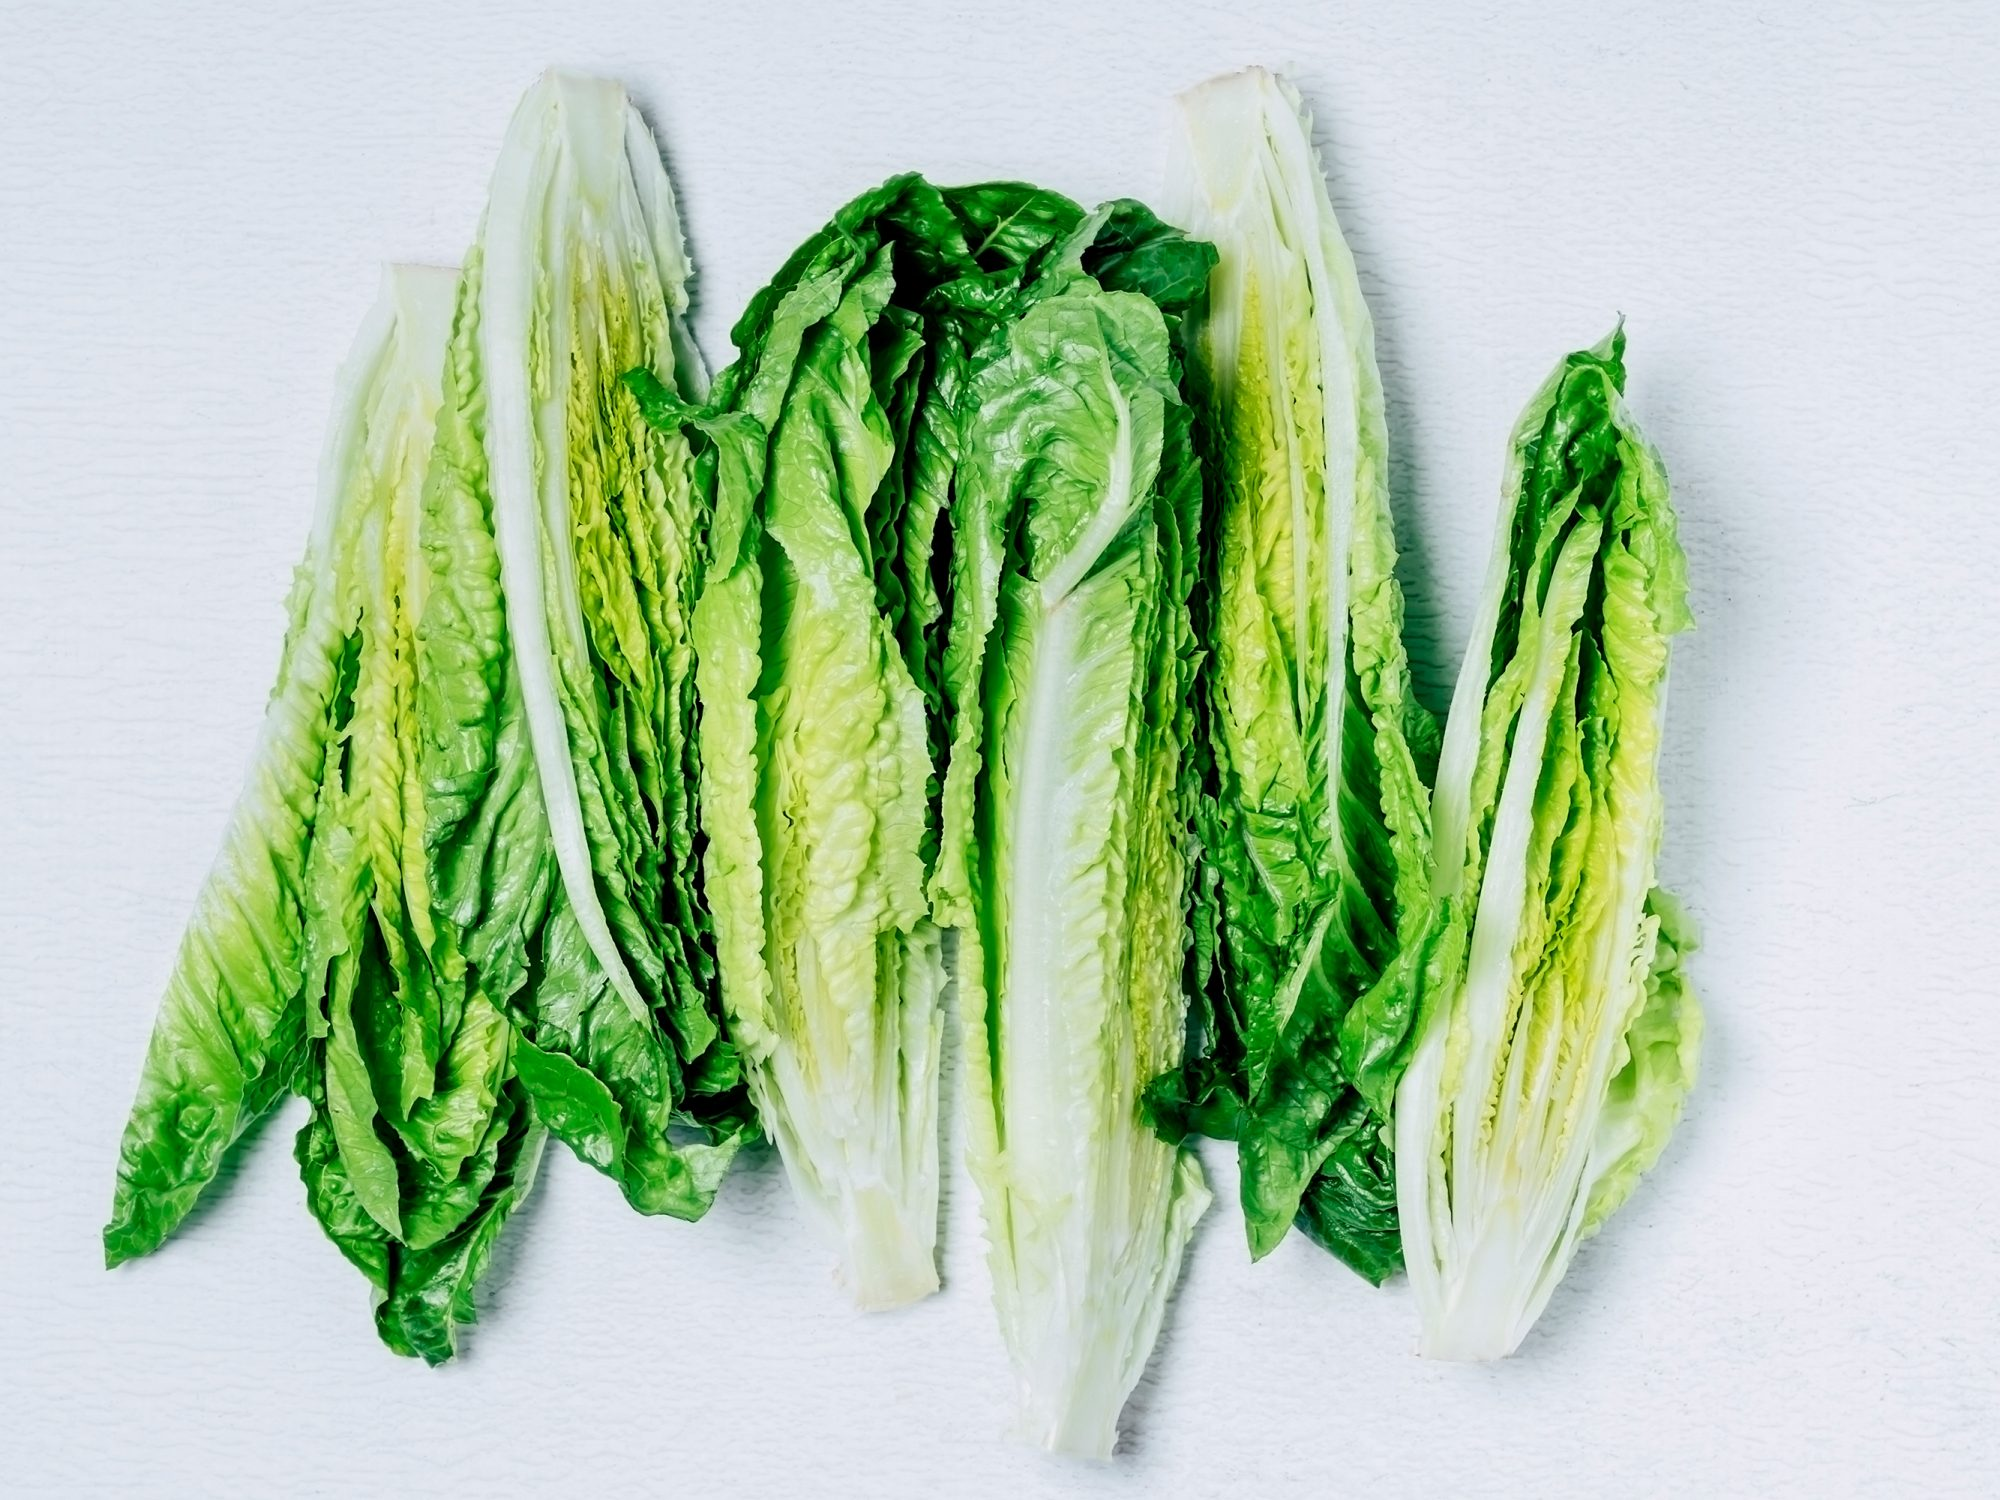 UPDATE: National E. coli Outbreak Is Worsening, a Blanket Ban On Romaine Lettuce Is Recommended